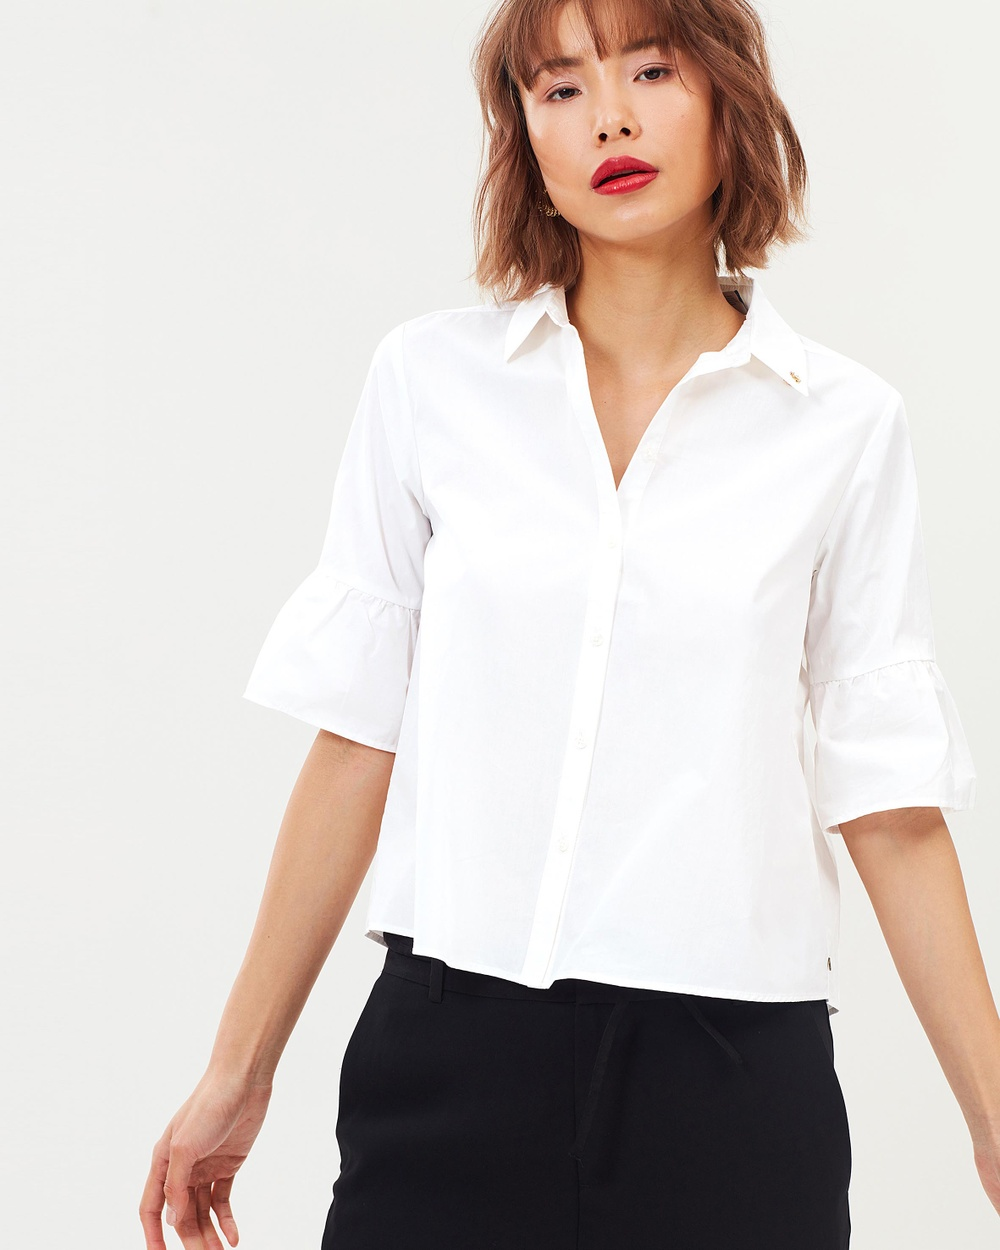 Maison Scotch Special Sleeve Ruffle Shirt Tops White Special Sleeve Ruffle Shirt